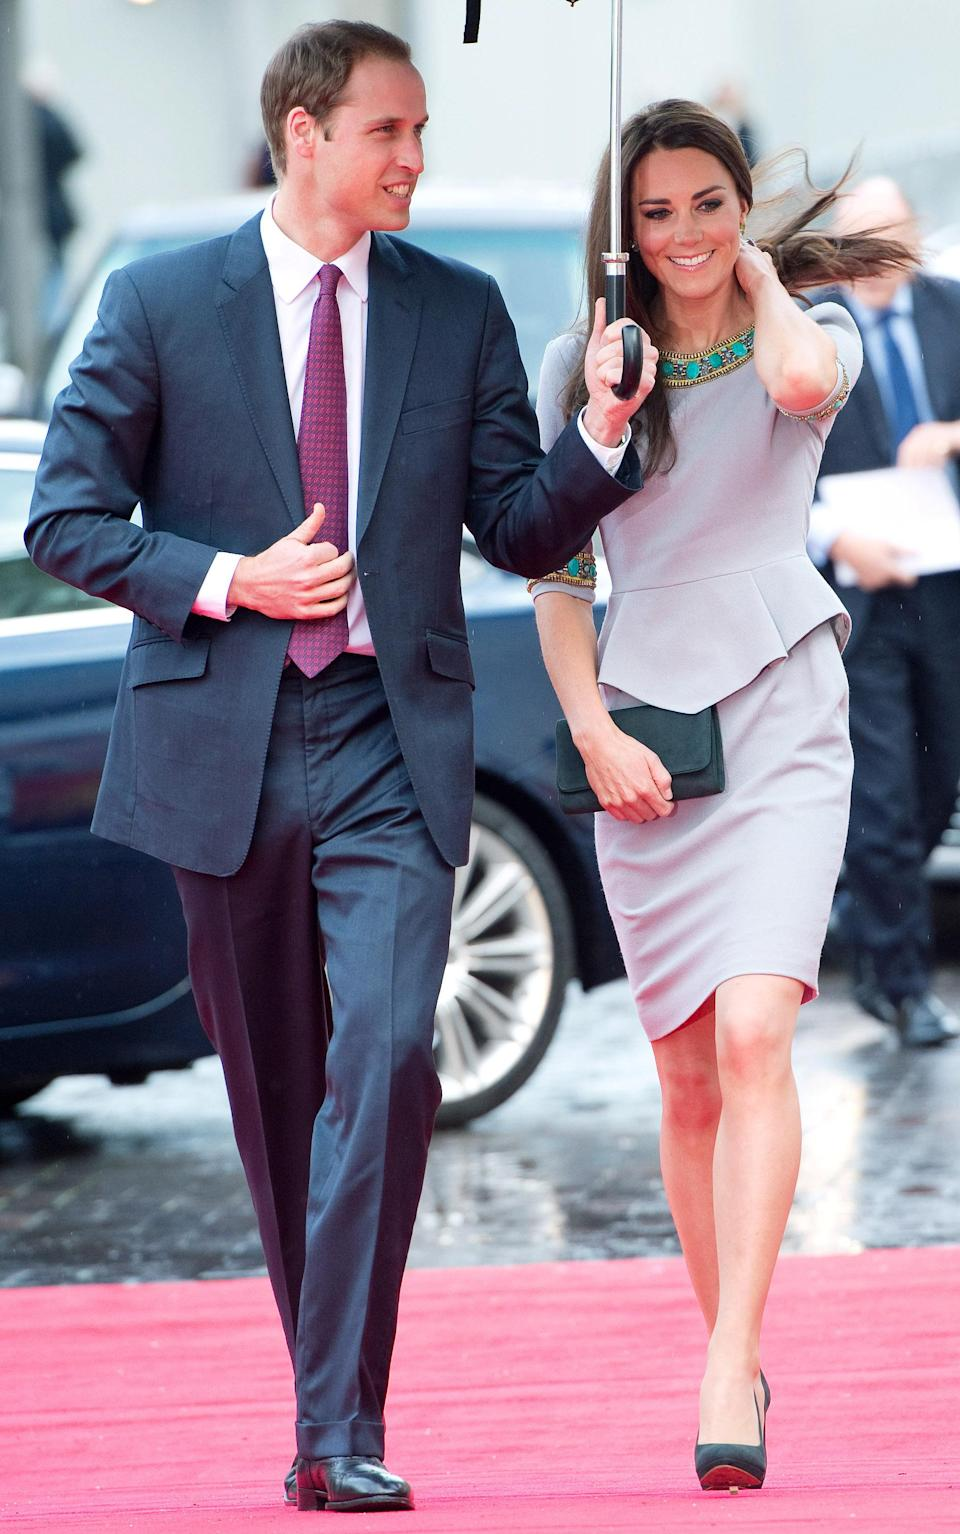 <p>The Duchess of Cambridge wore a Mathew Williamson dress for the event while Prince William wore a navy suit and co-ordinating tie. <em>[Photo: Getty]</em> </p>